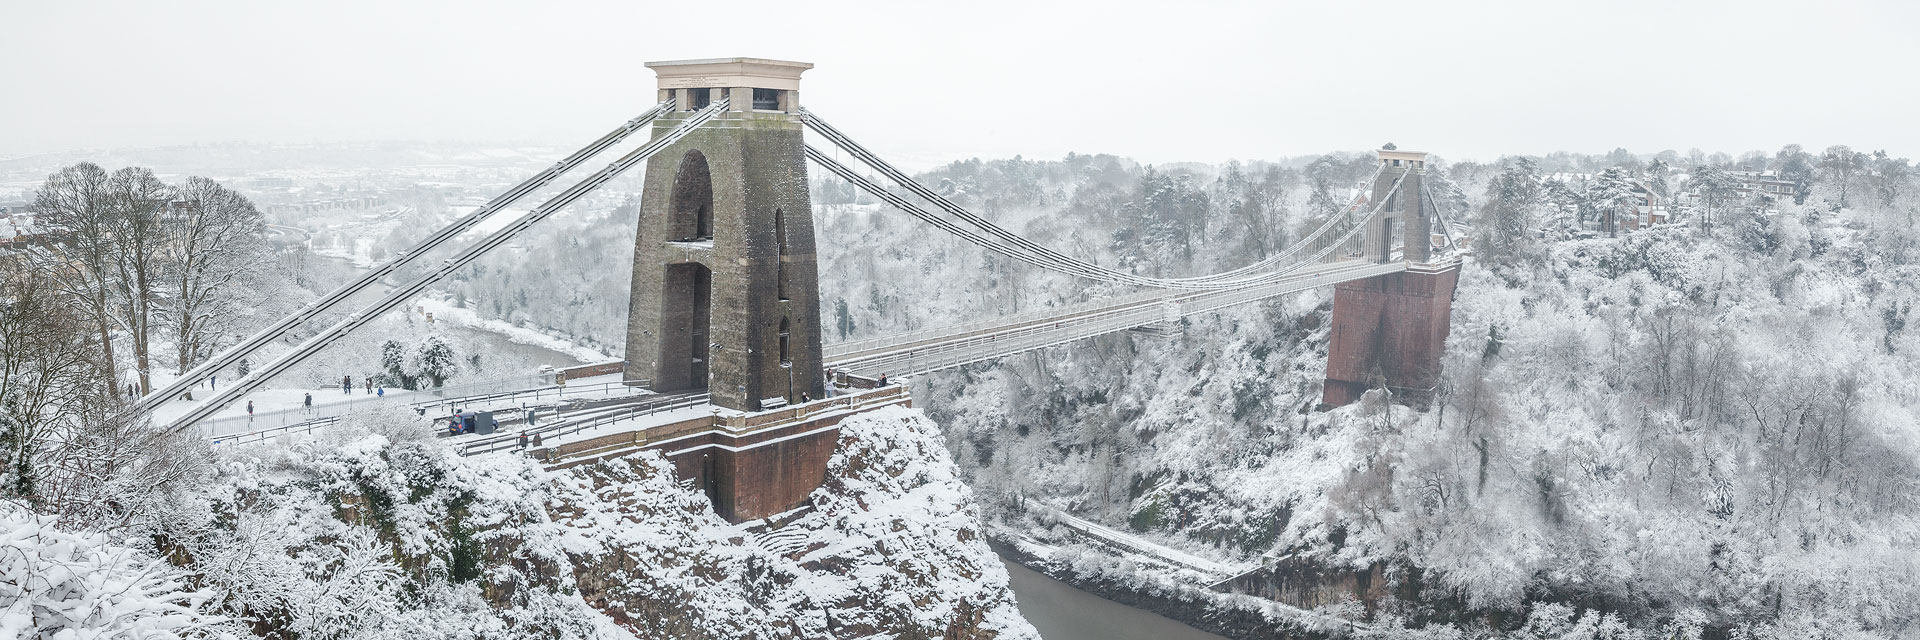 suspension bridge essay Suspension bridge – a parabola what is meant by suspension bridgea suspension bridge is a type of bridge in which the deck (the load-bearing portion) is hung below suspension cables on vertical suspenders.